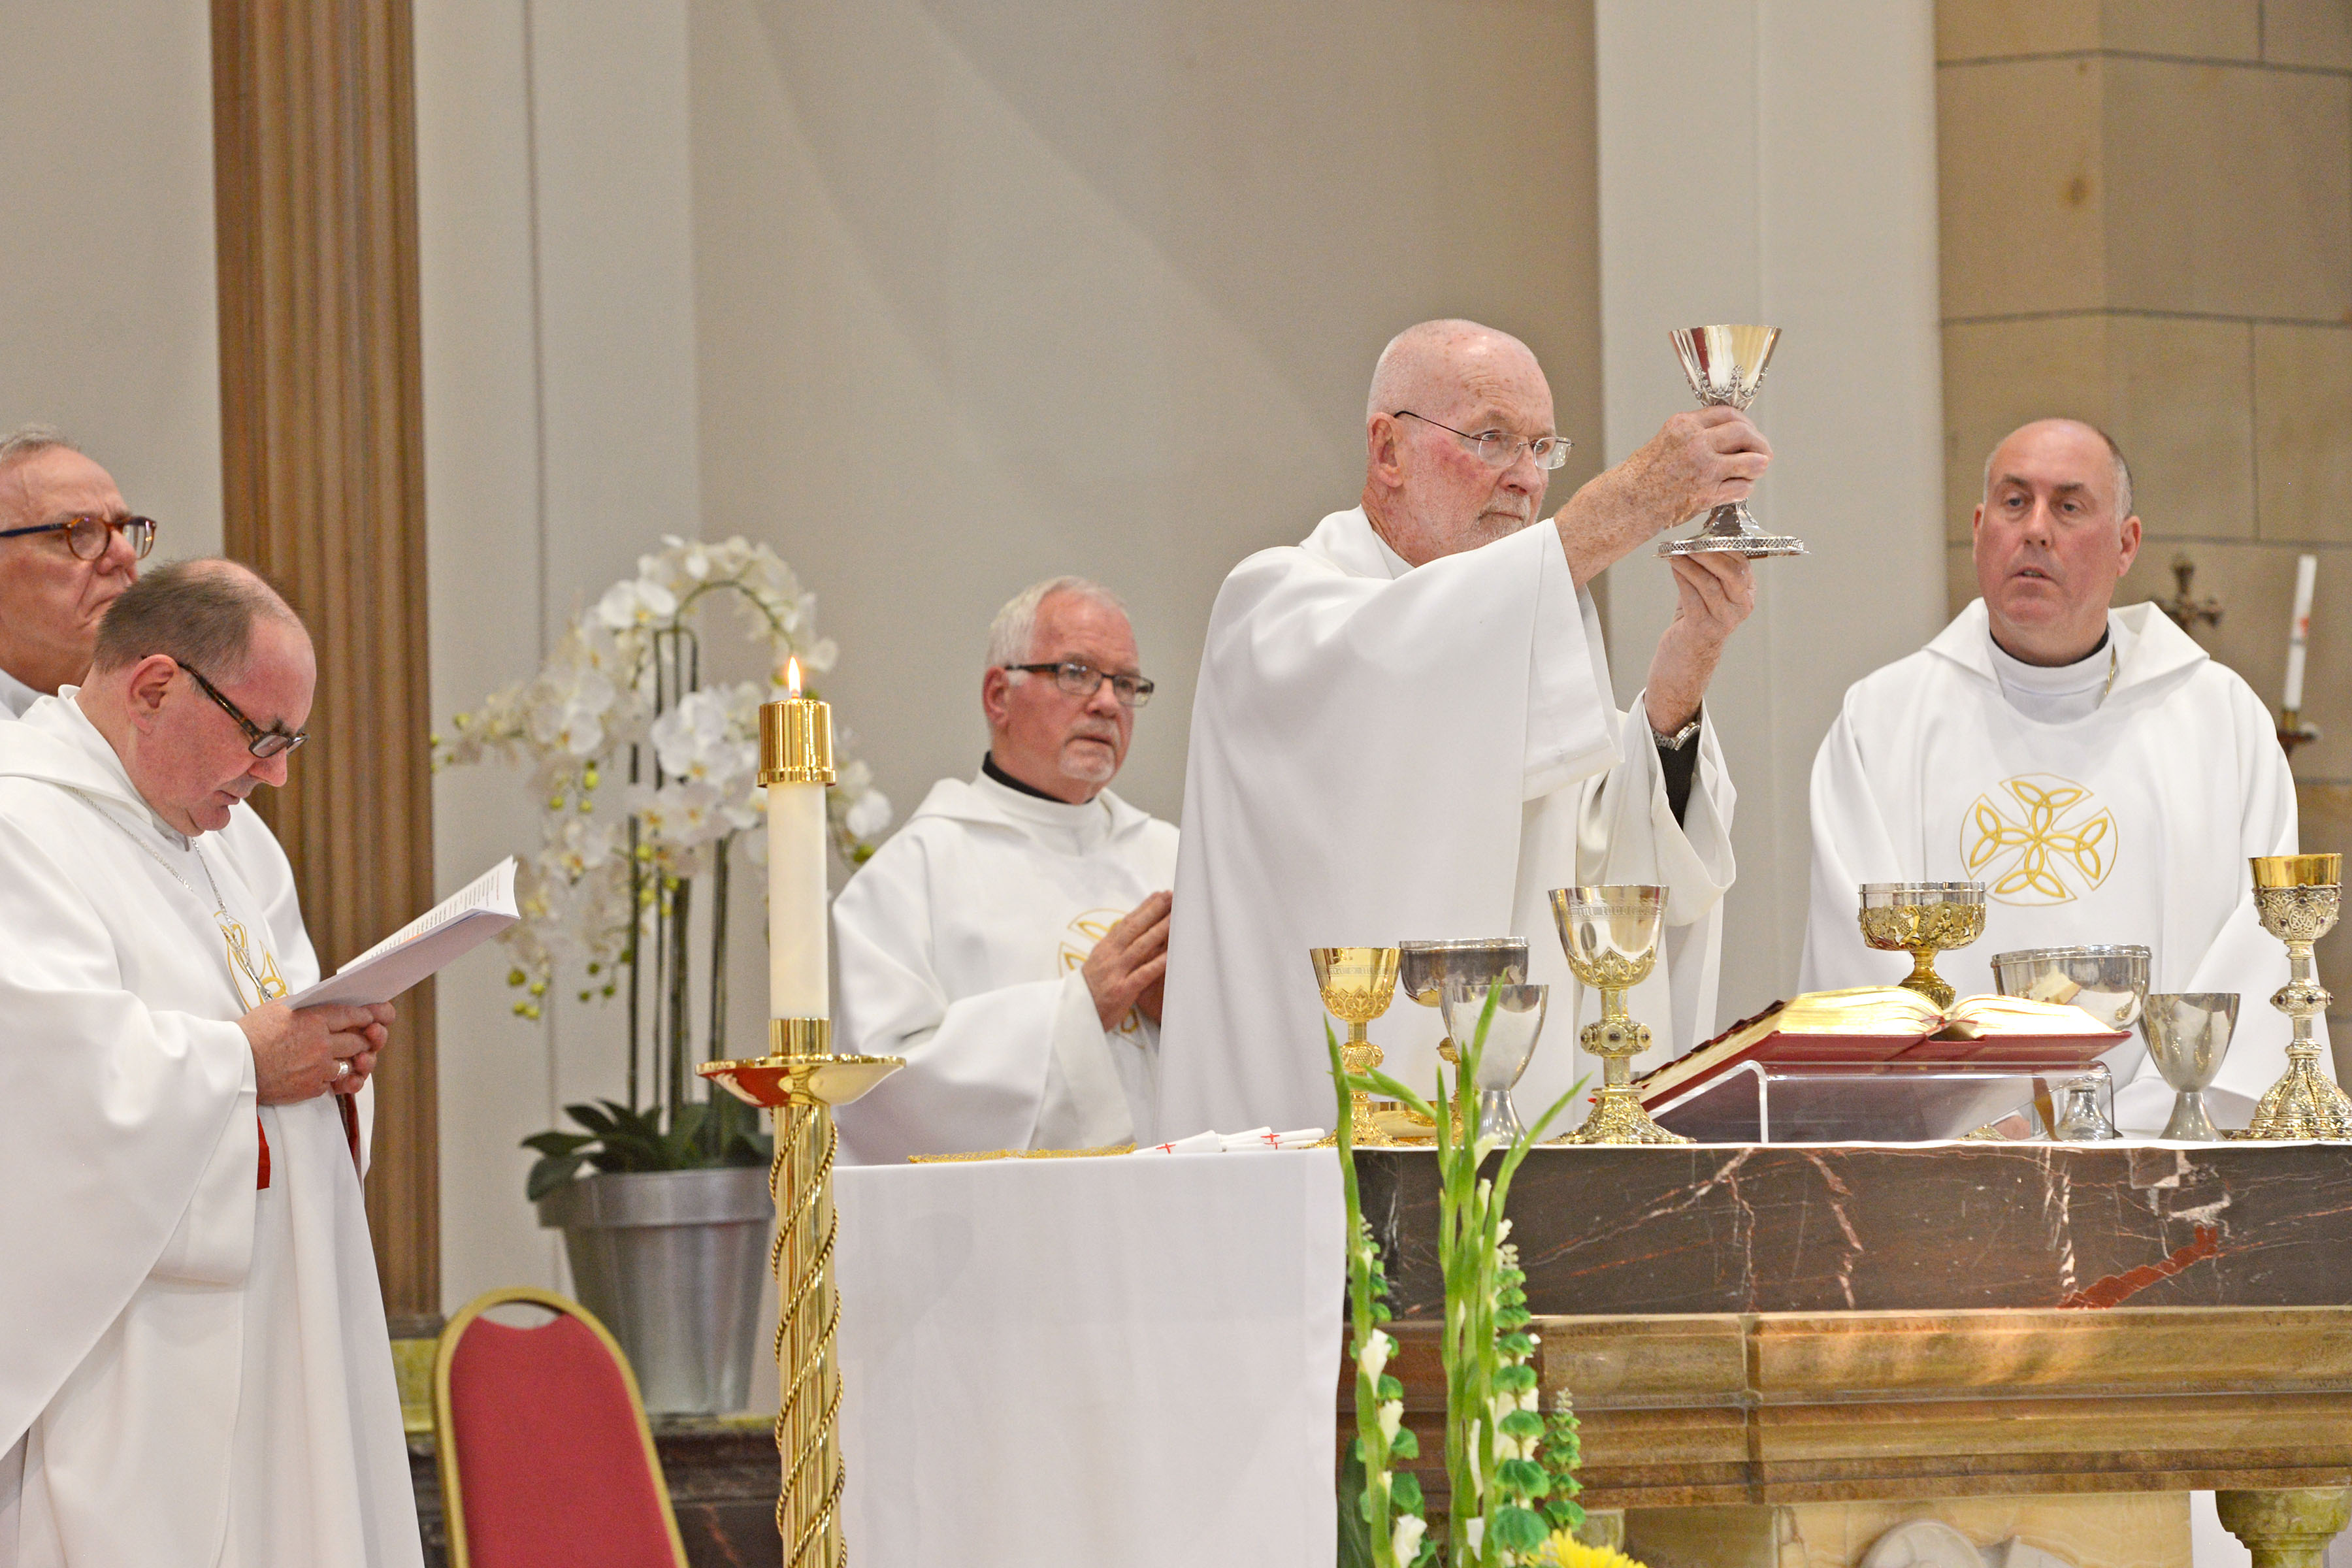 Mass of Thanksgiving for the Golden Jubilee of Priestly Ordination of Fr Patrick Hennessy, Friday 7th June 2019, St Columbkille's, Rutherglen. Photo by and copyright of Paul Mc Sherry 07770 393960